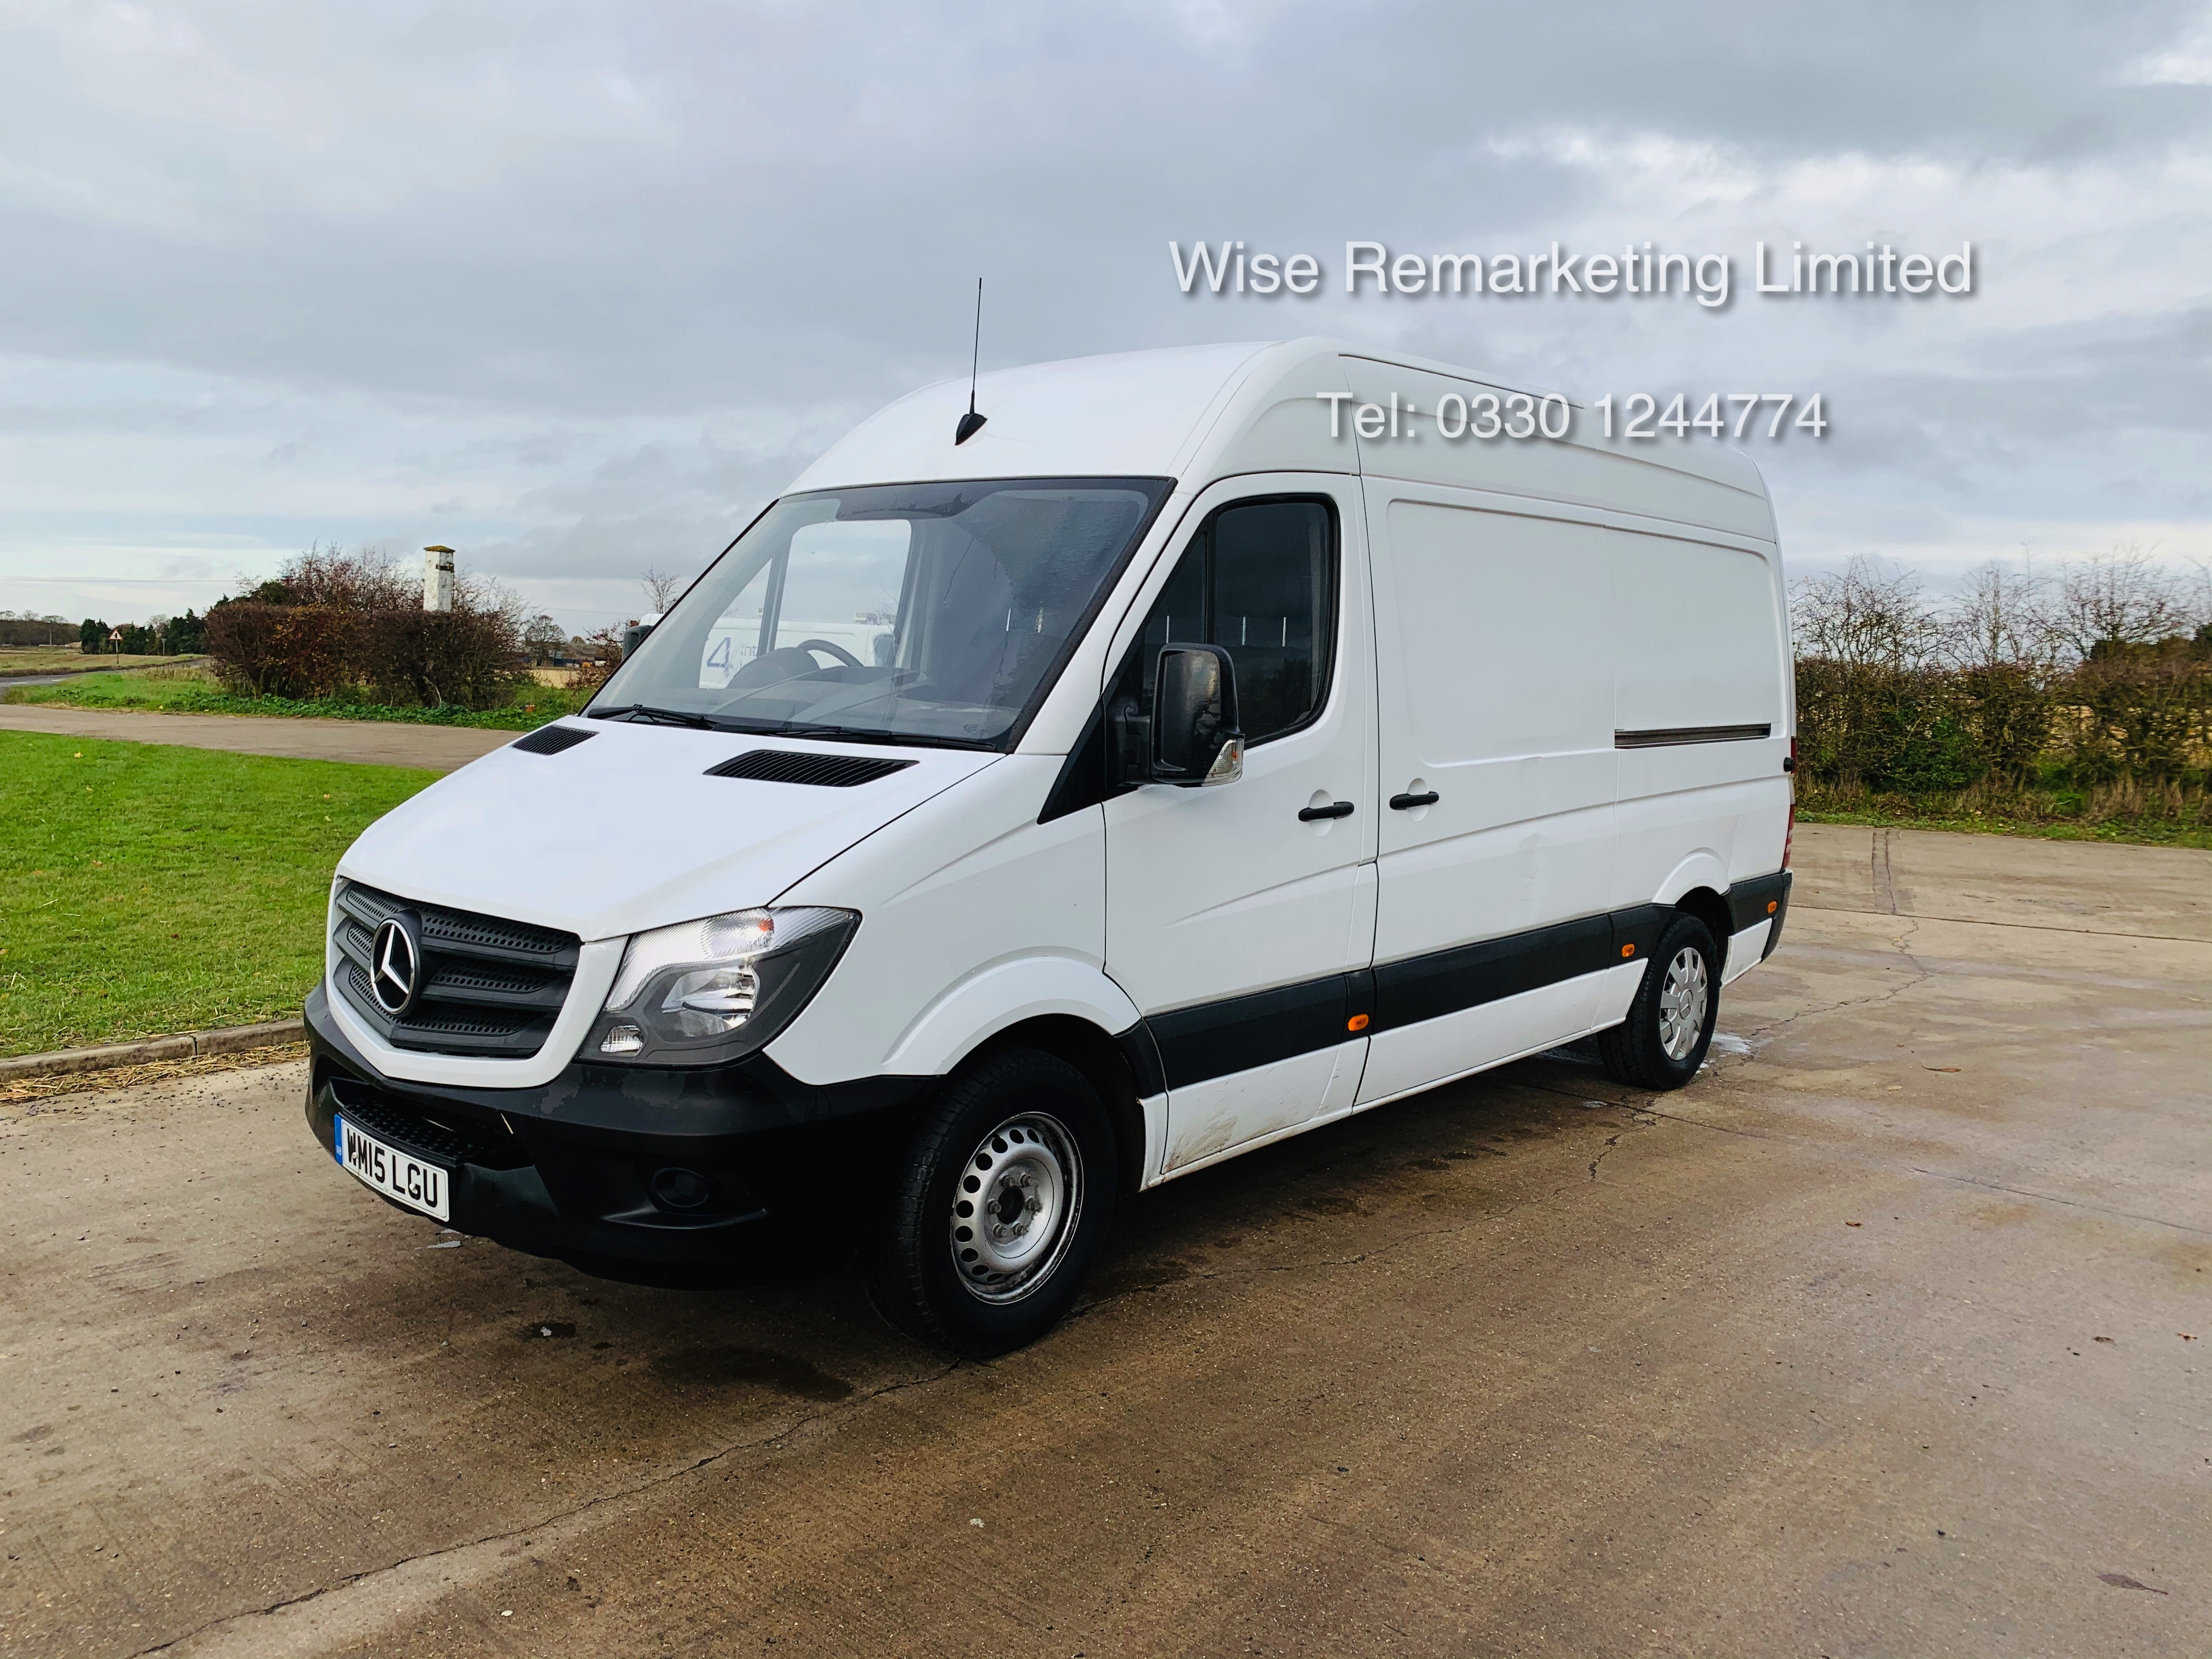 *Reserve Met* Mercedes Sprinter 313 CDI 2.1TD - 2015 15 Reg - Company Maintained - Low Miles - Image 7 of 16